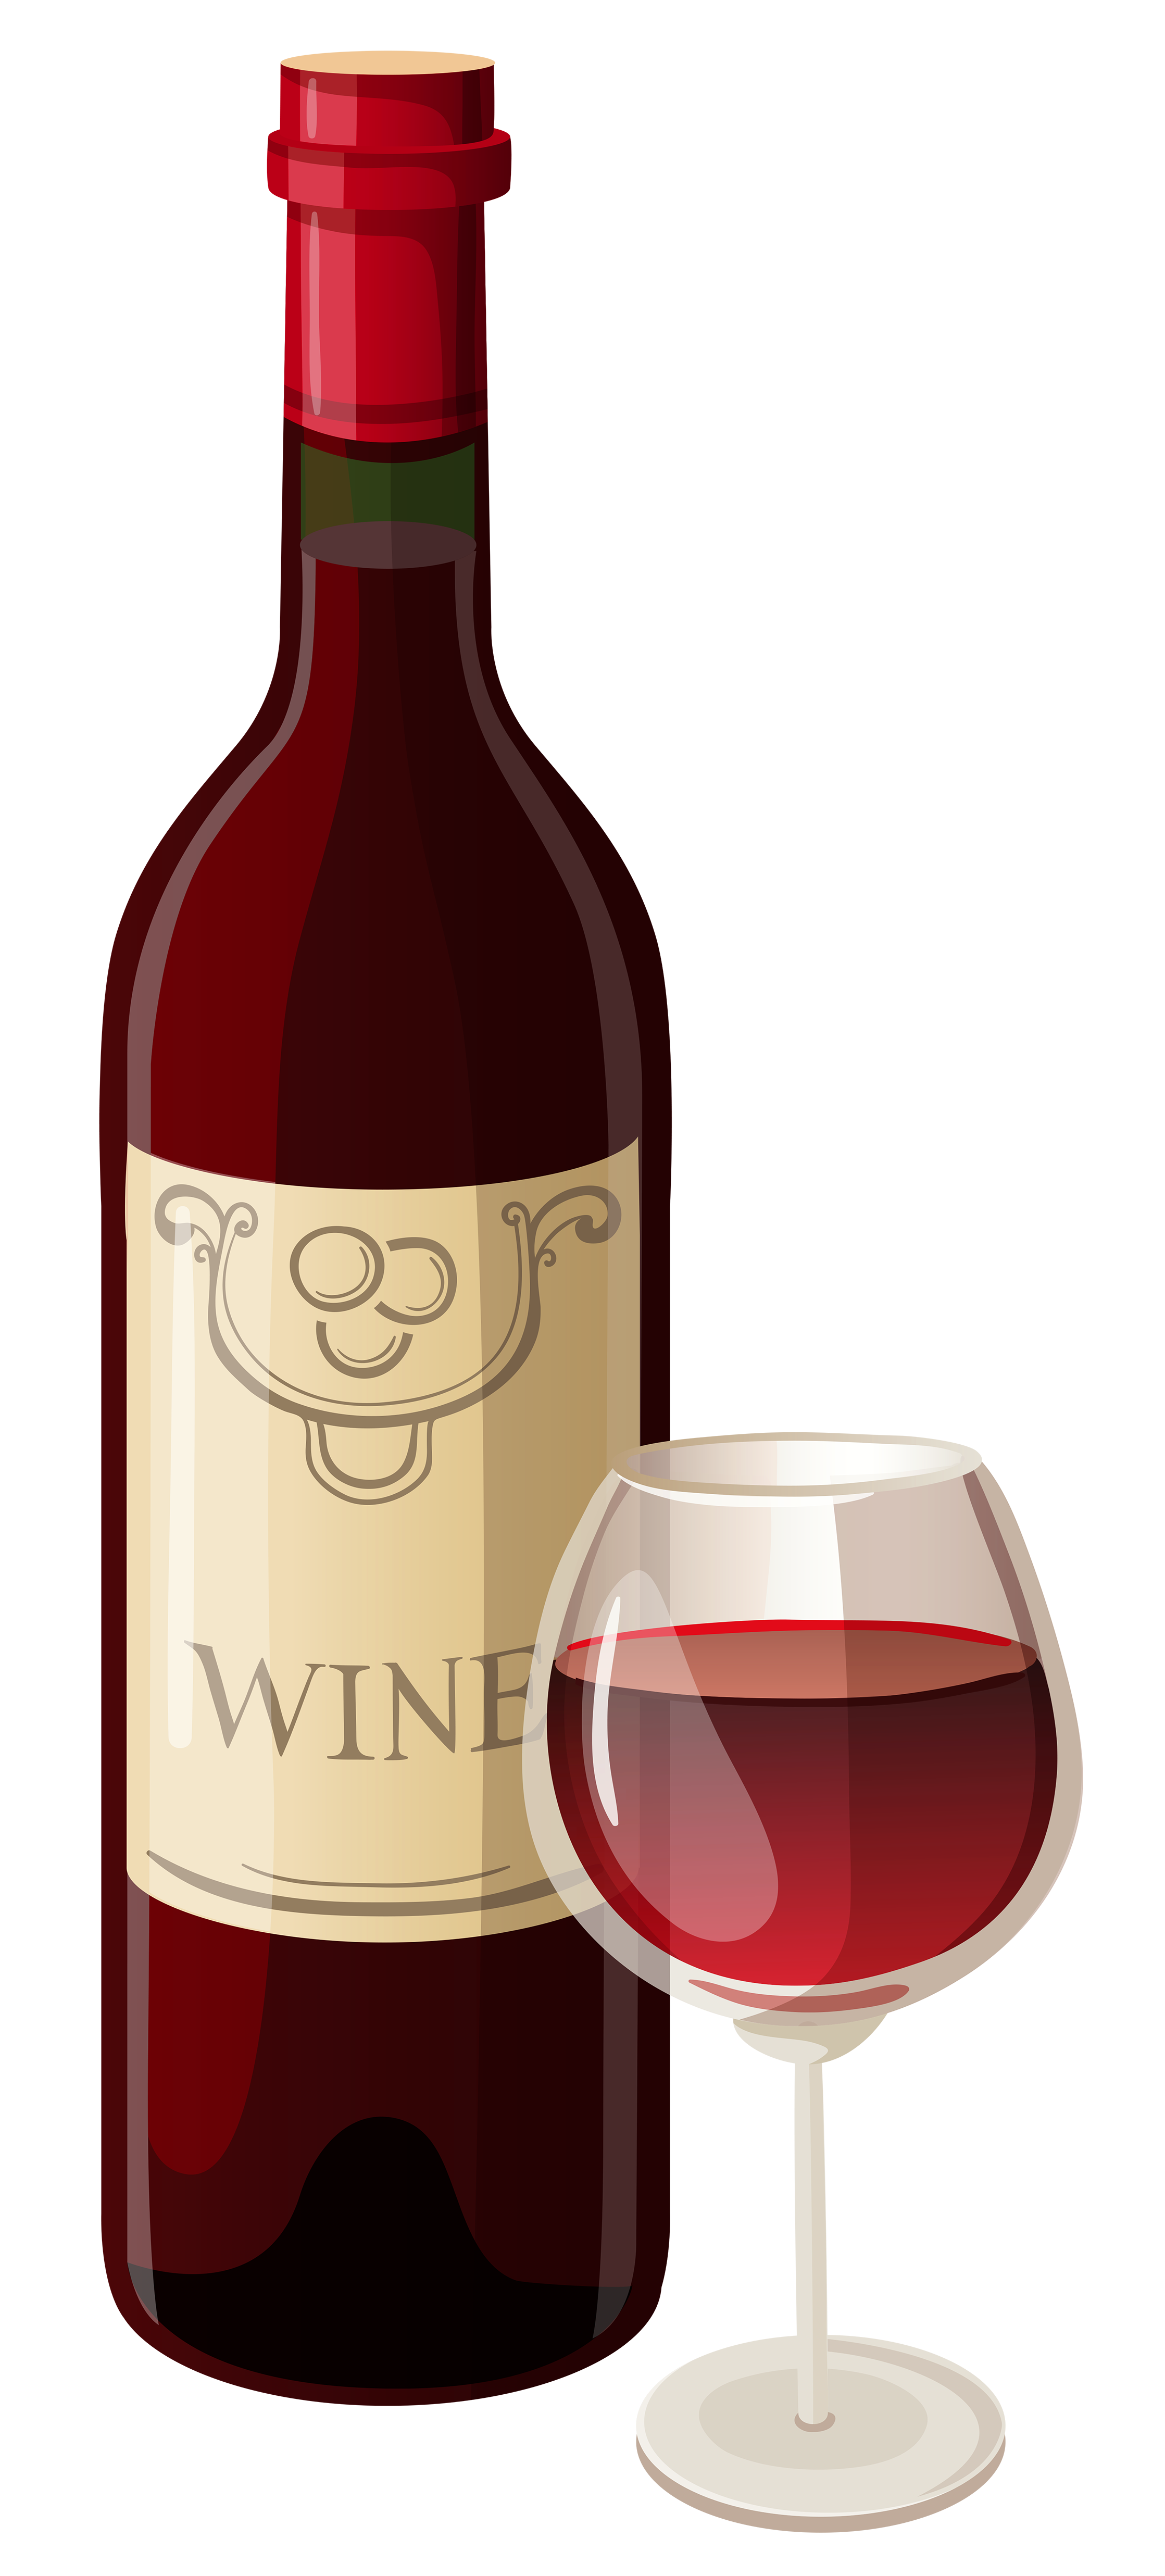 Wine bottle .png. Related image advent tree